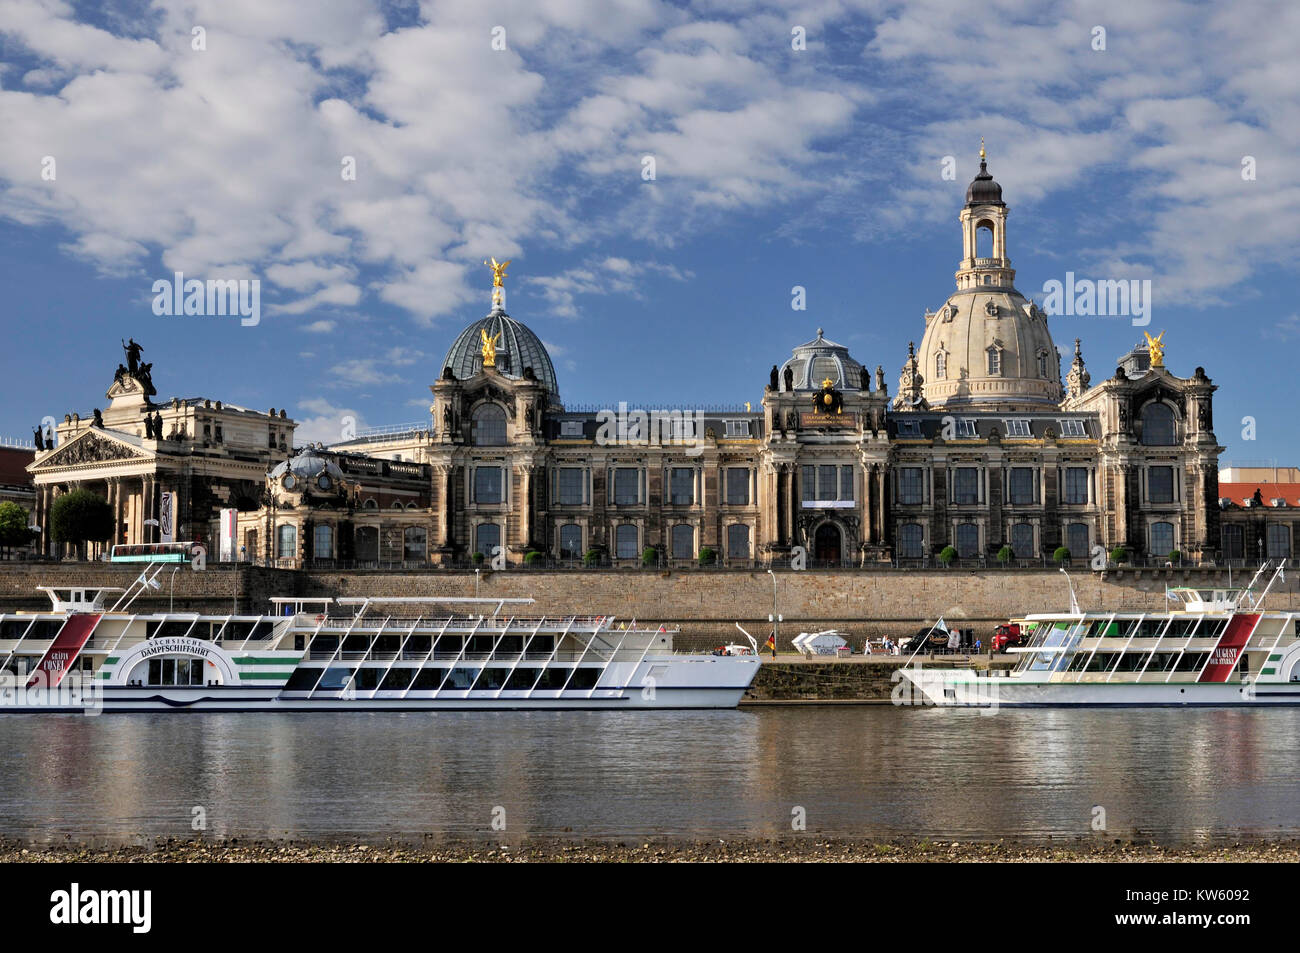 Academy of arts and dome of the Church of Our Lady, Dresden, Kunstakademie und Kuppel der Frauenkirche - Stock Image